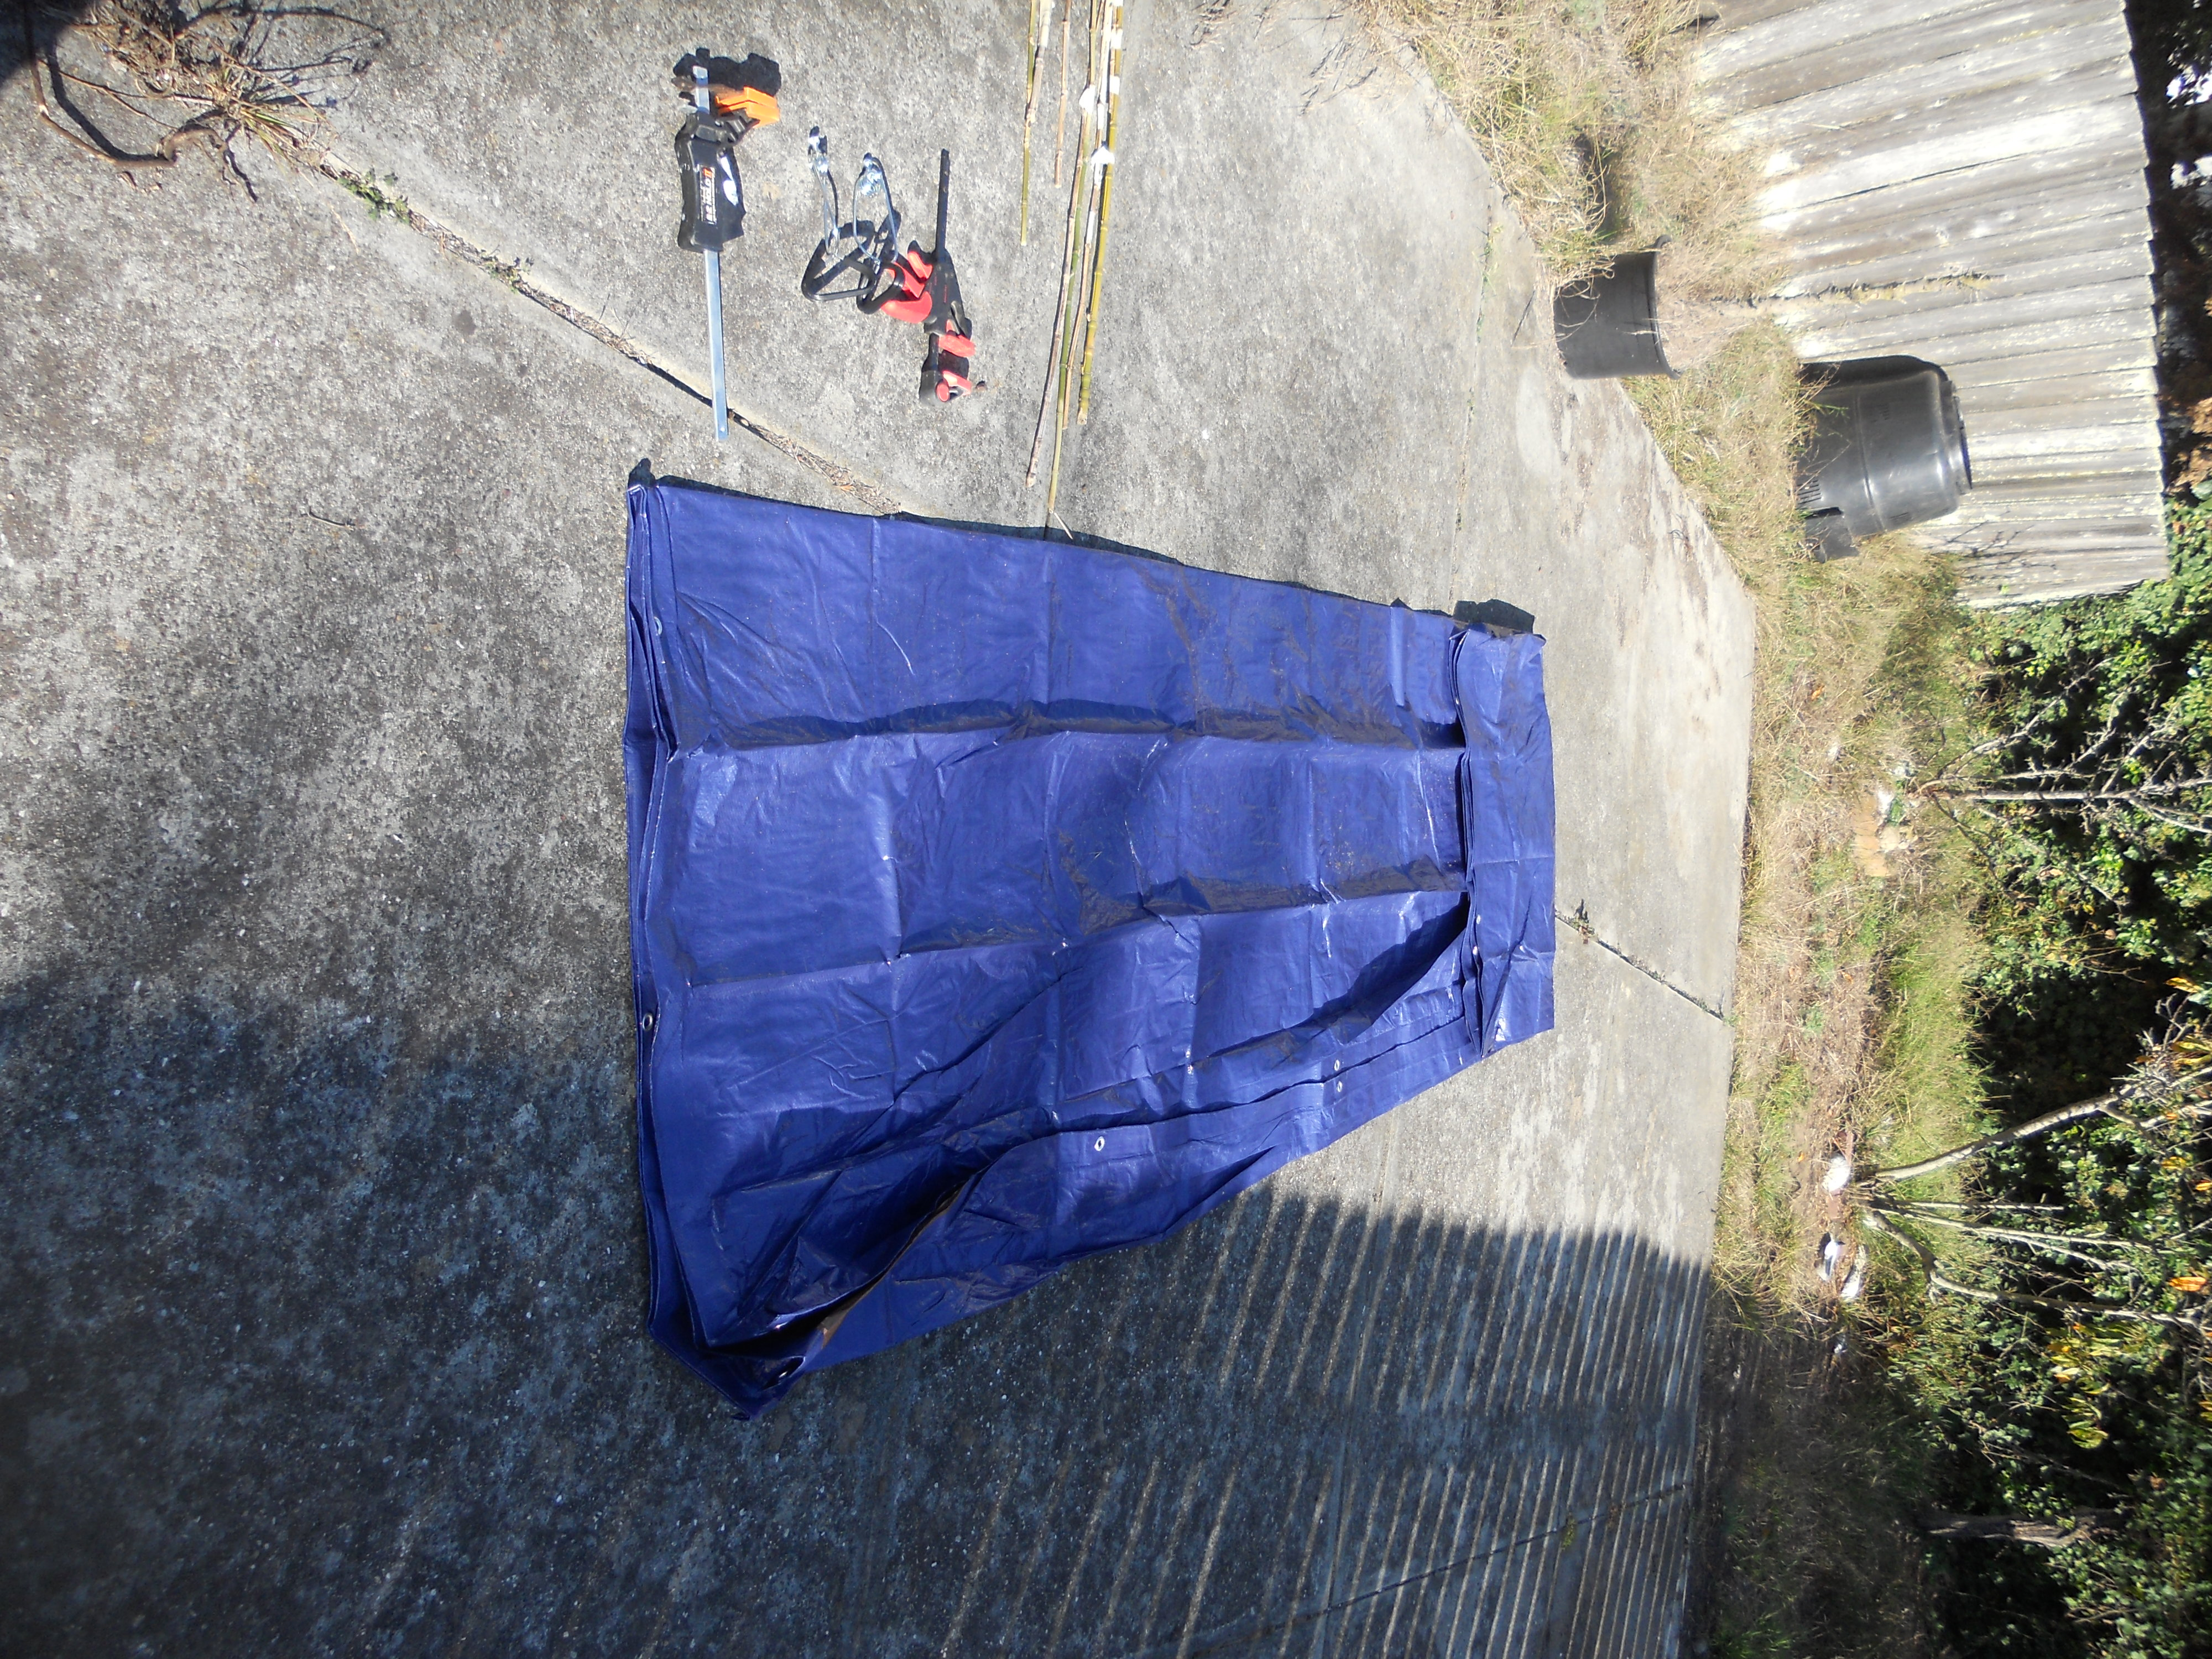 Picture of Step 1: Jury Rig a Large Container Out of a Tarp